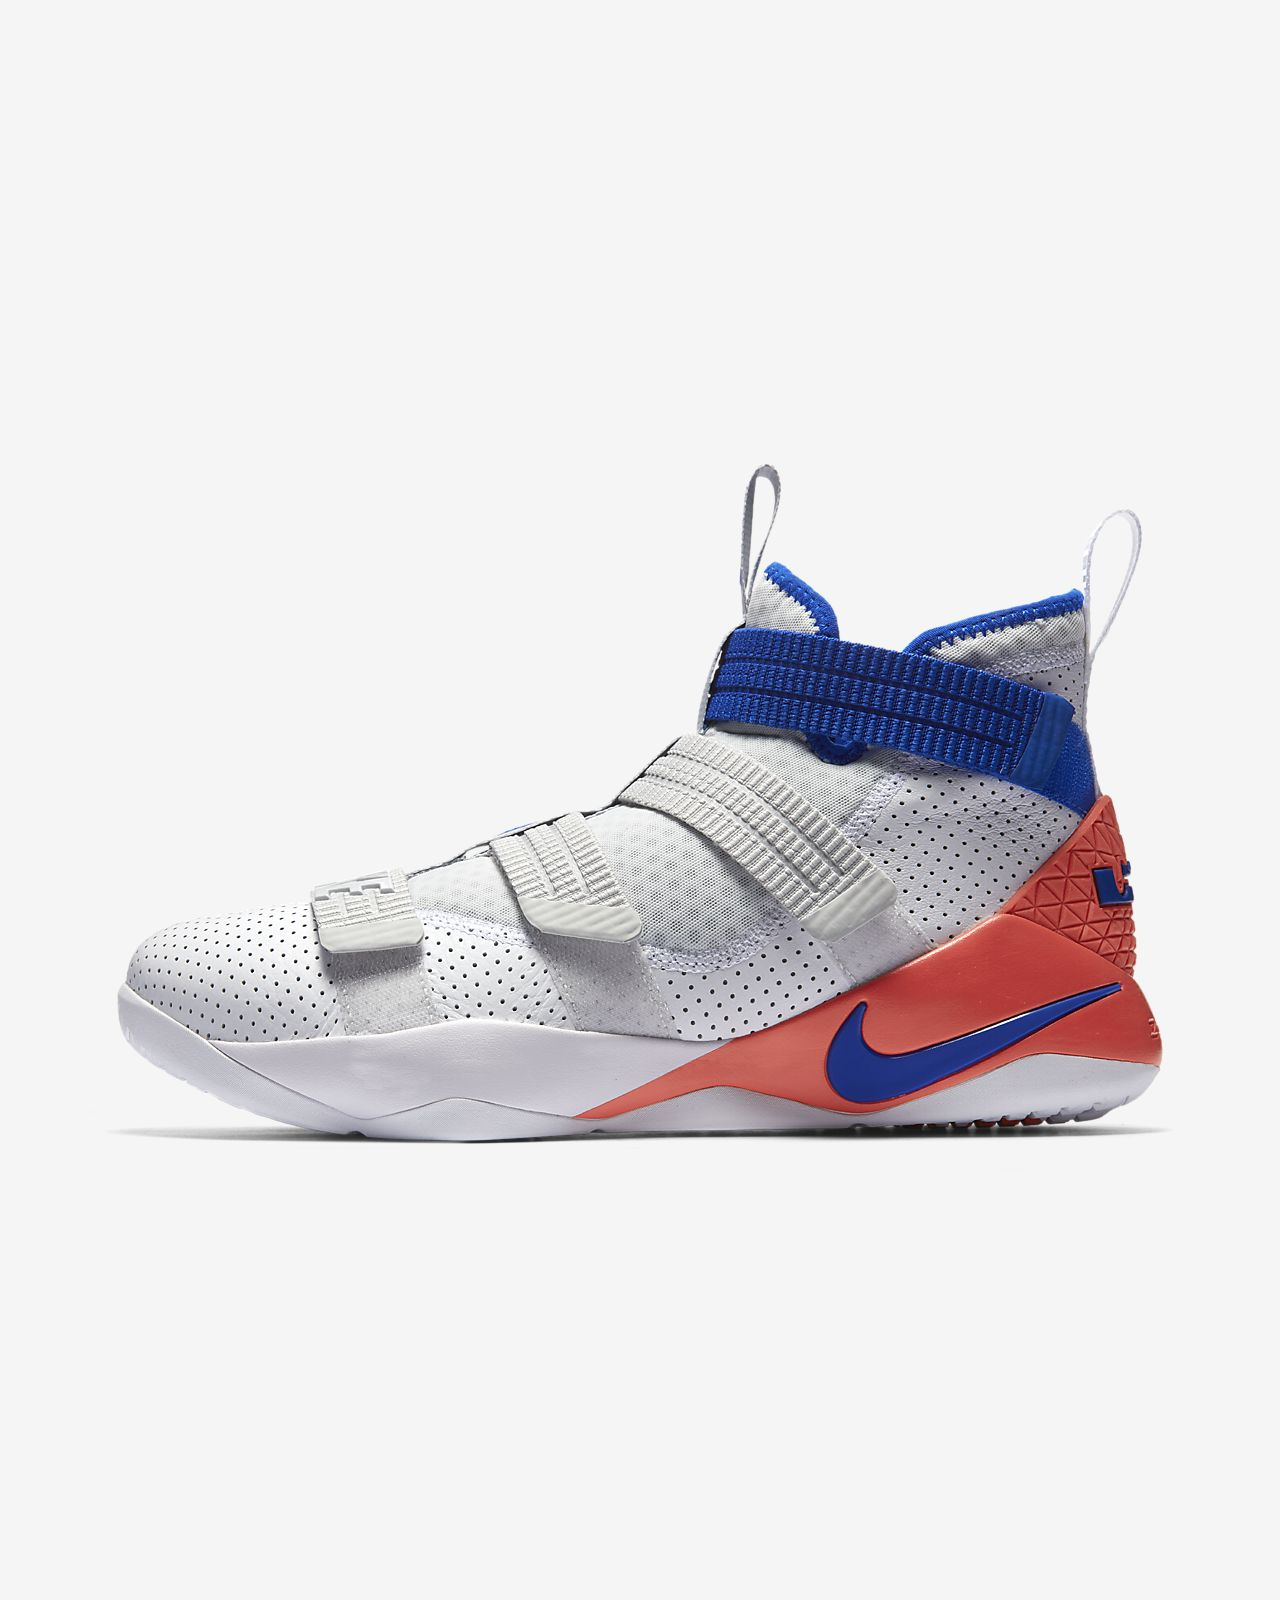 Lebron soldier 9 blue and white dress